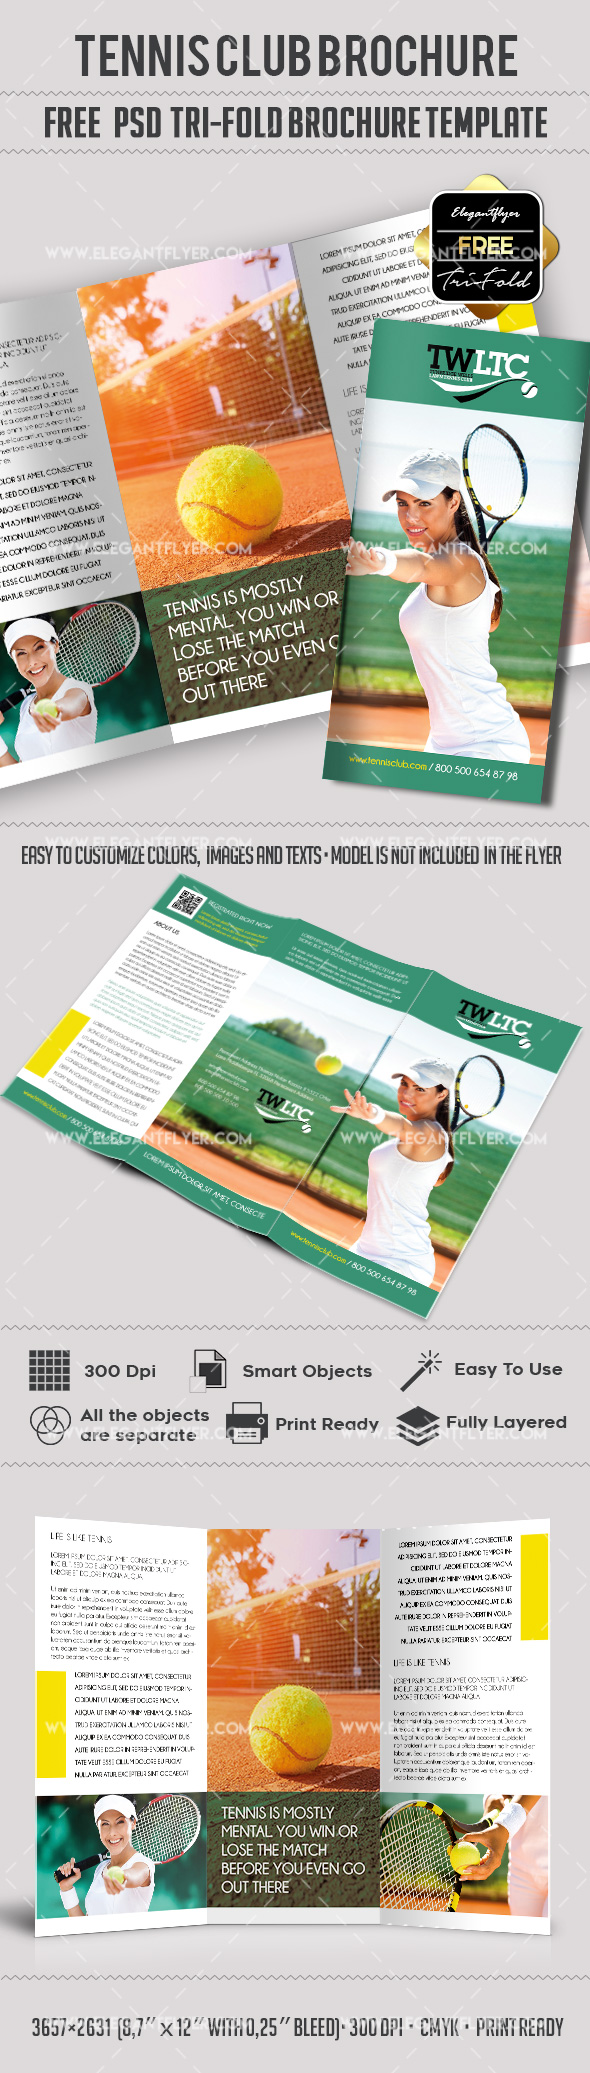 Tri-Fold Brochure for Tennis Club